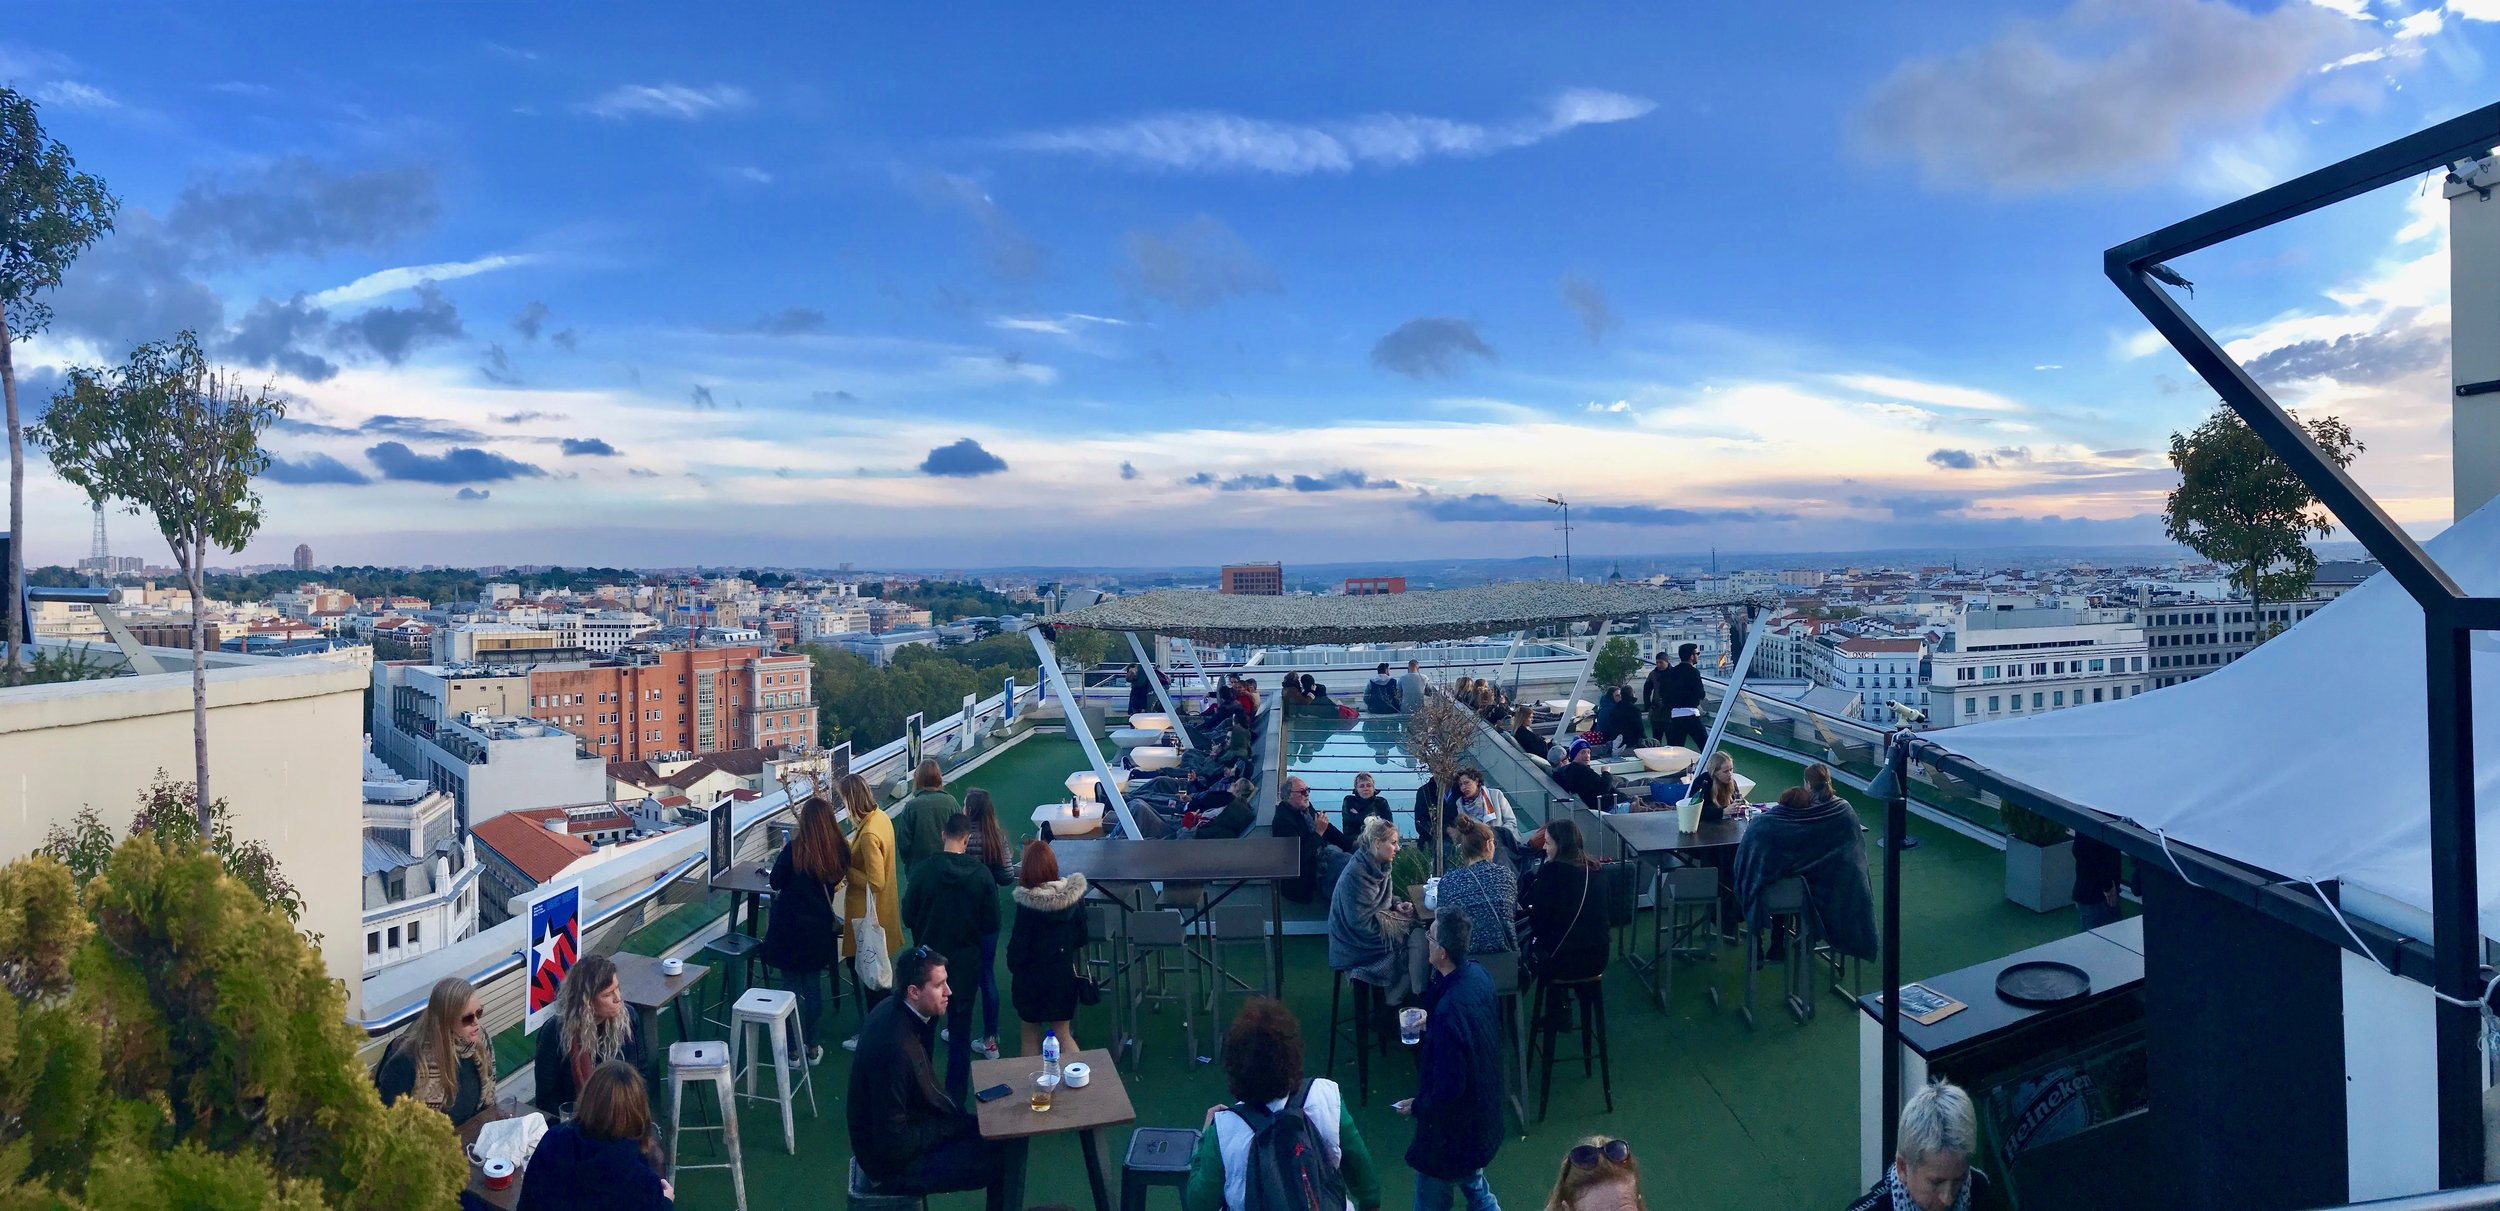 Madrid does a great rooftop bar!